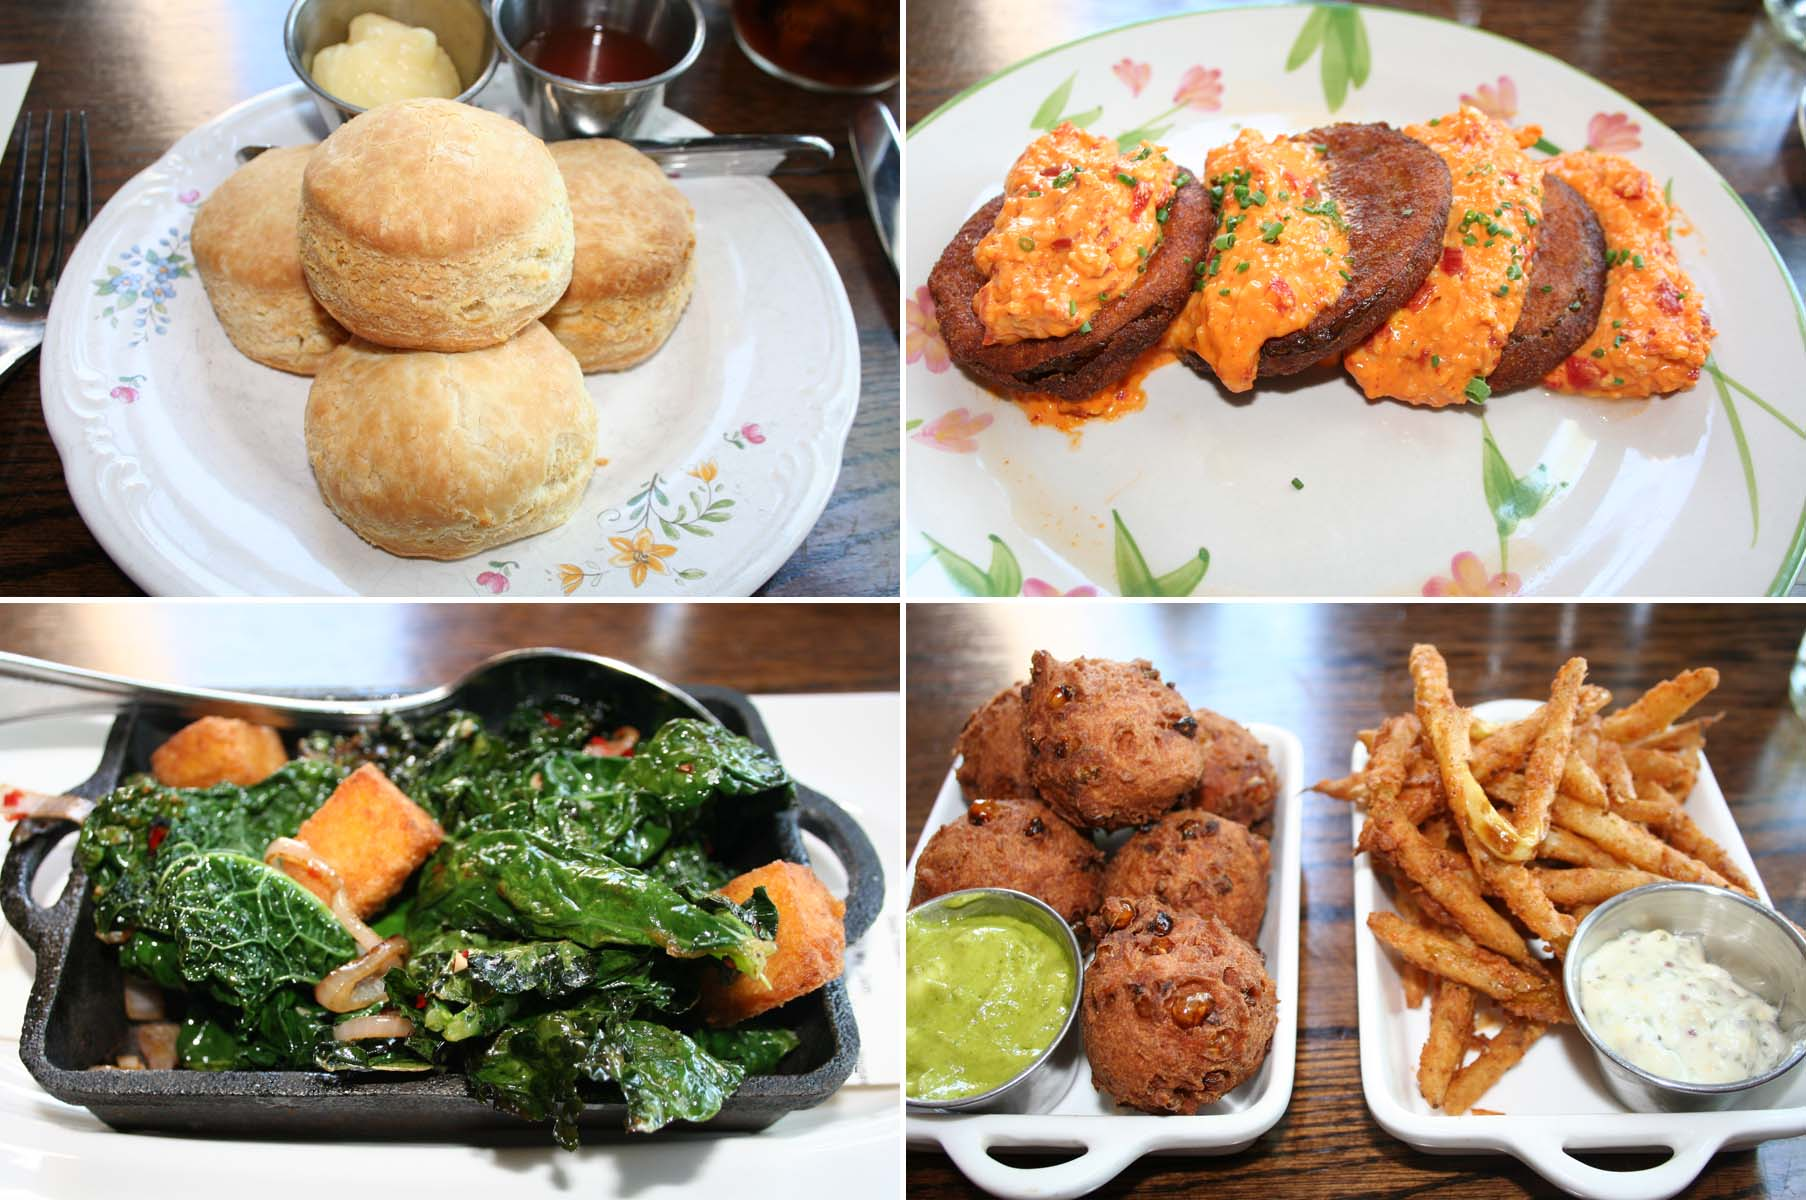 Macon Bistro's lunch starters included Essie's biscuits (clockwise from top left), fried green tomatoes with pimento cheese, corn fritters and fried pickles, and a side of crispy kale. (Photos: Mark Heckathorn/DC on Heels)